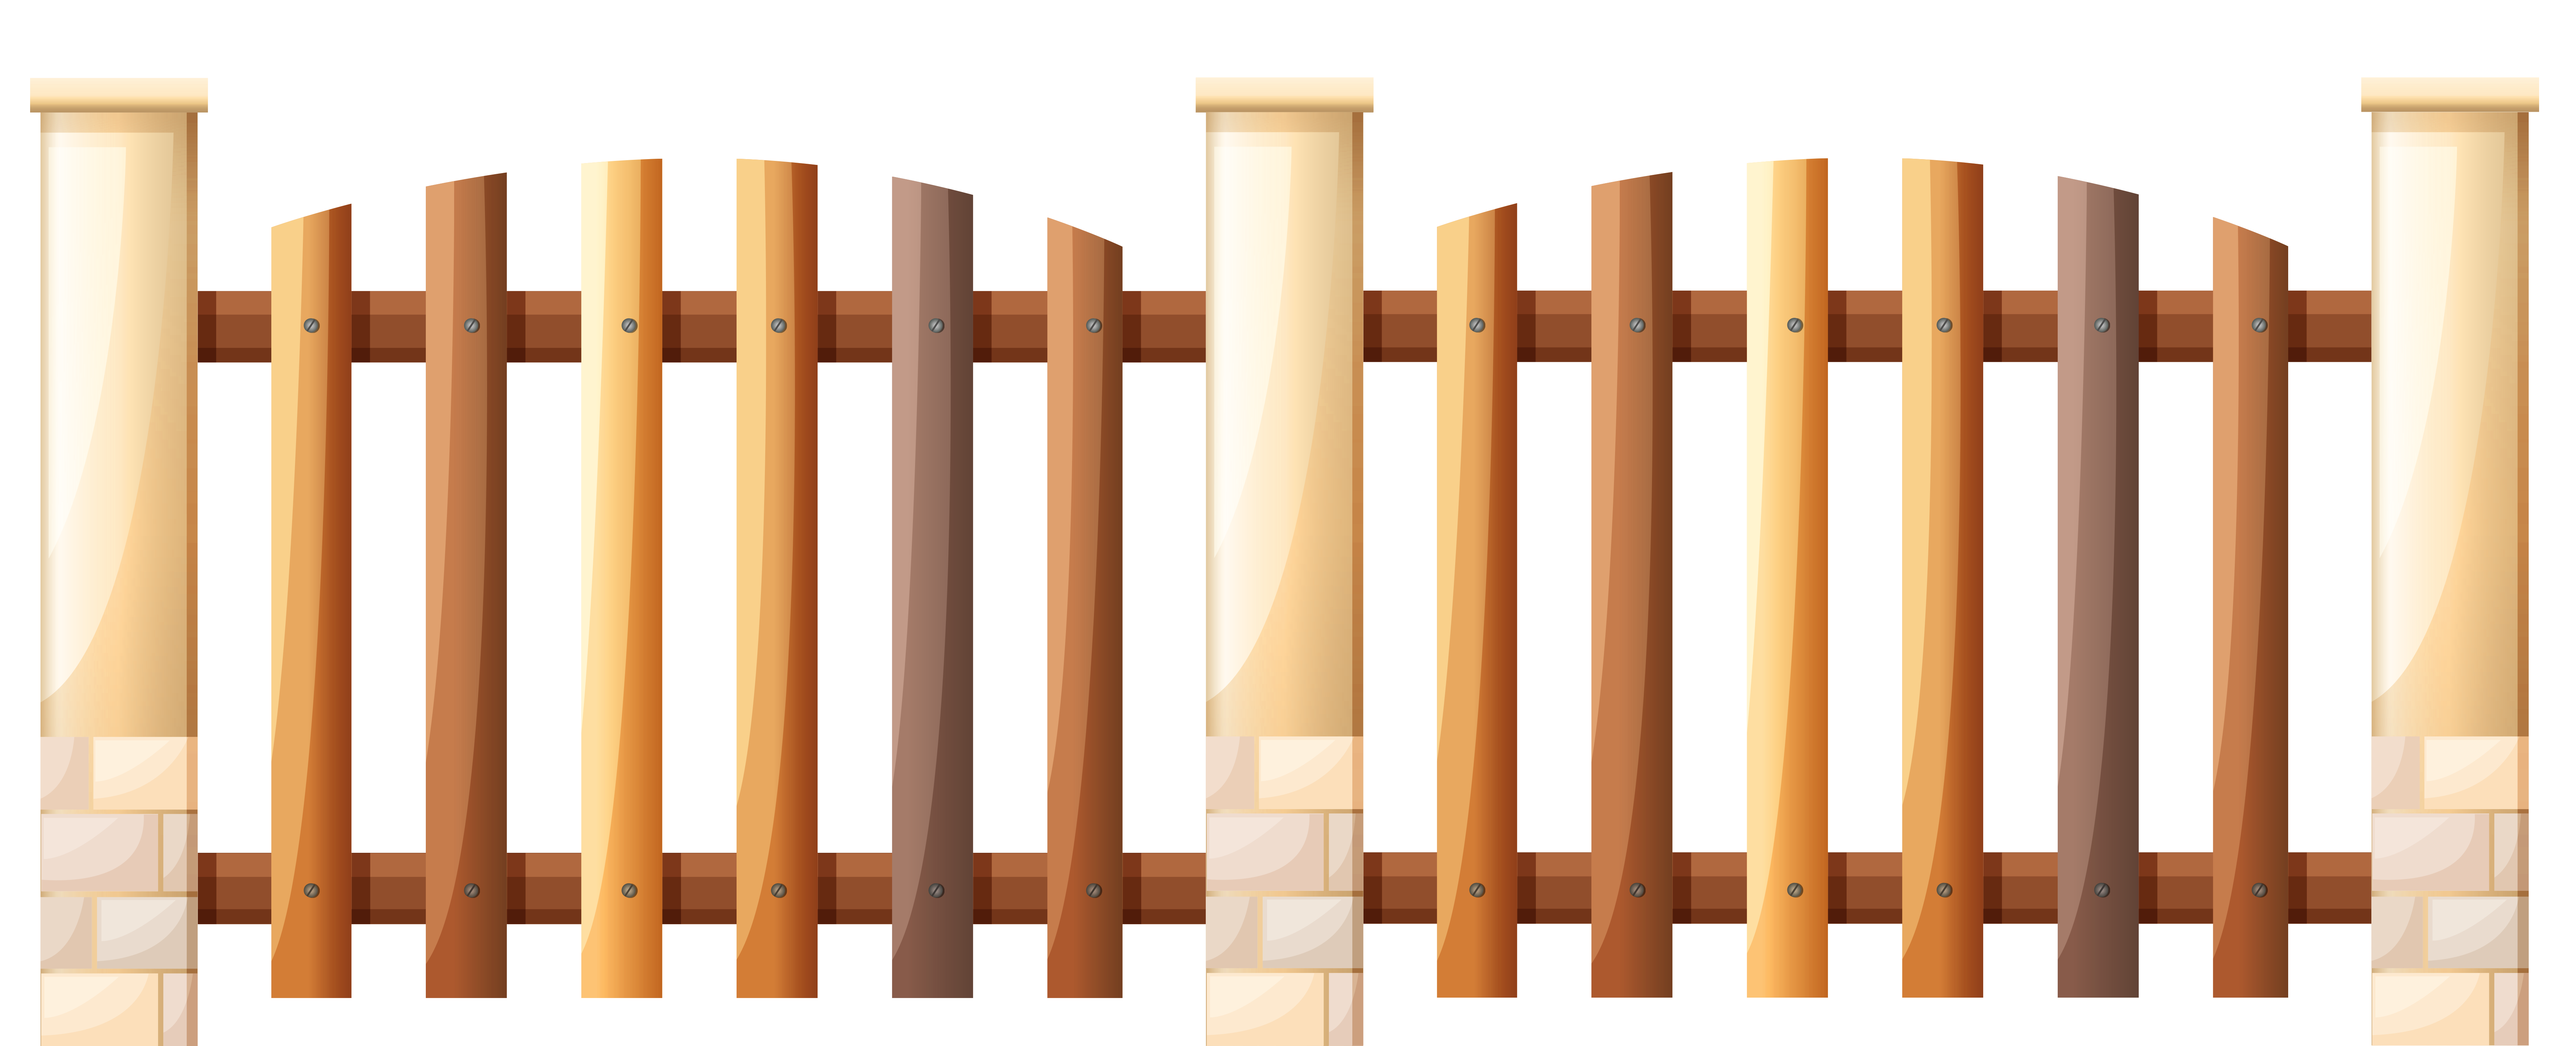 7187x2919 Wooden Yard Fence Png Clipartu200b Gallery Yopriceville